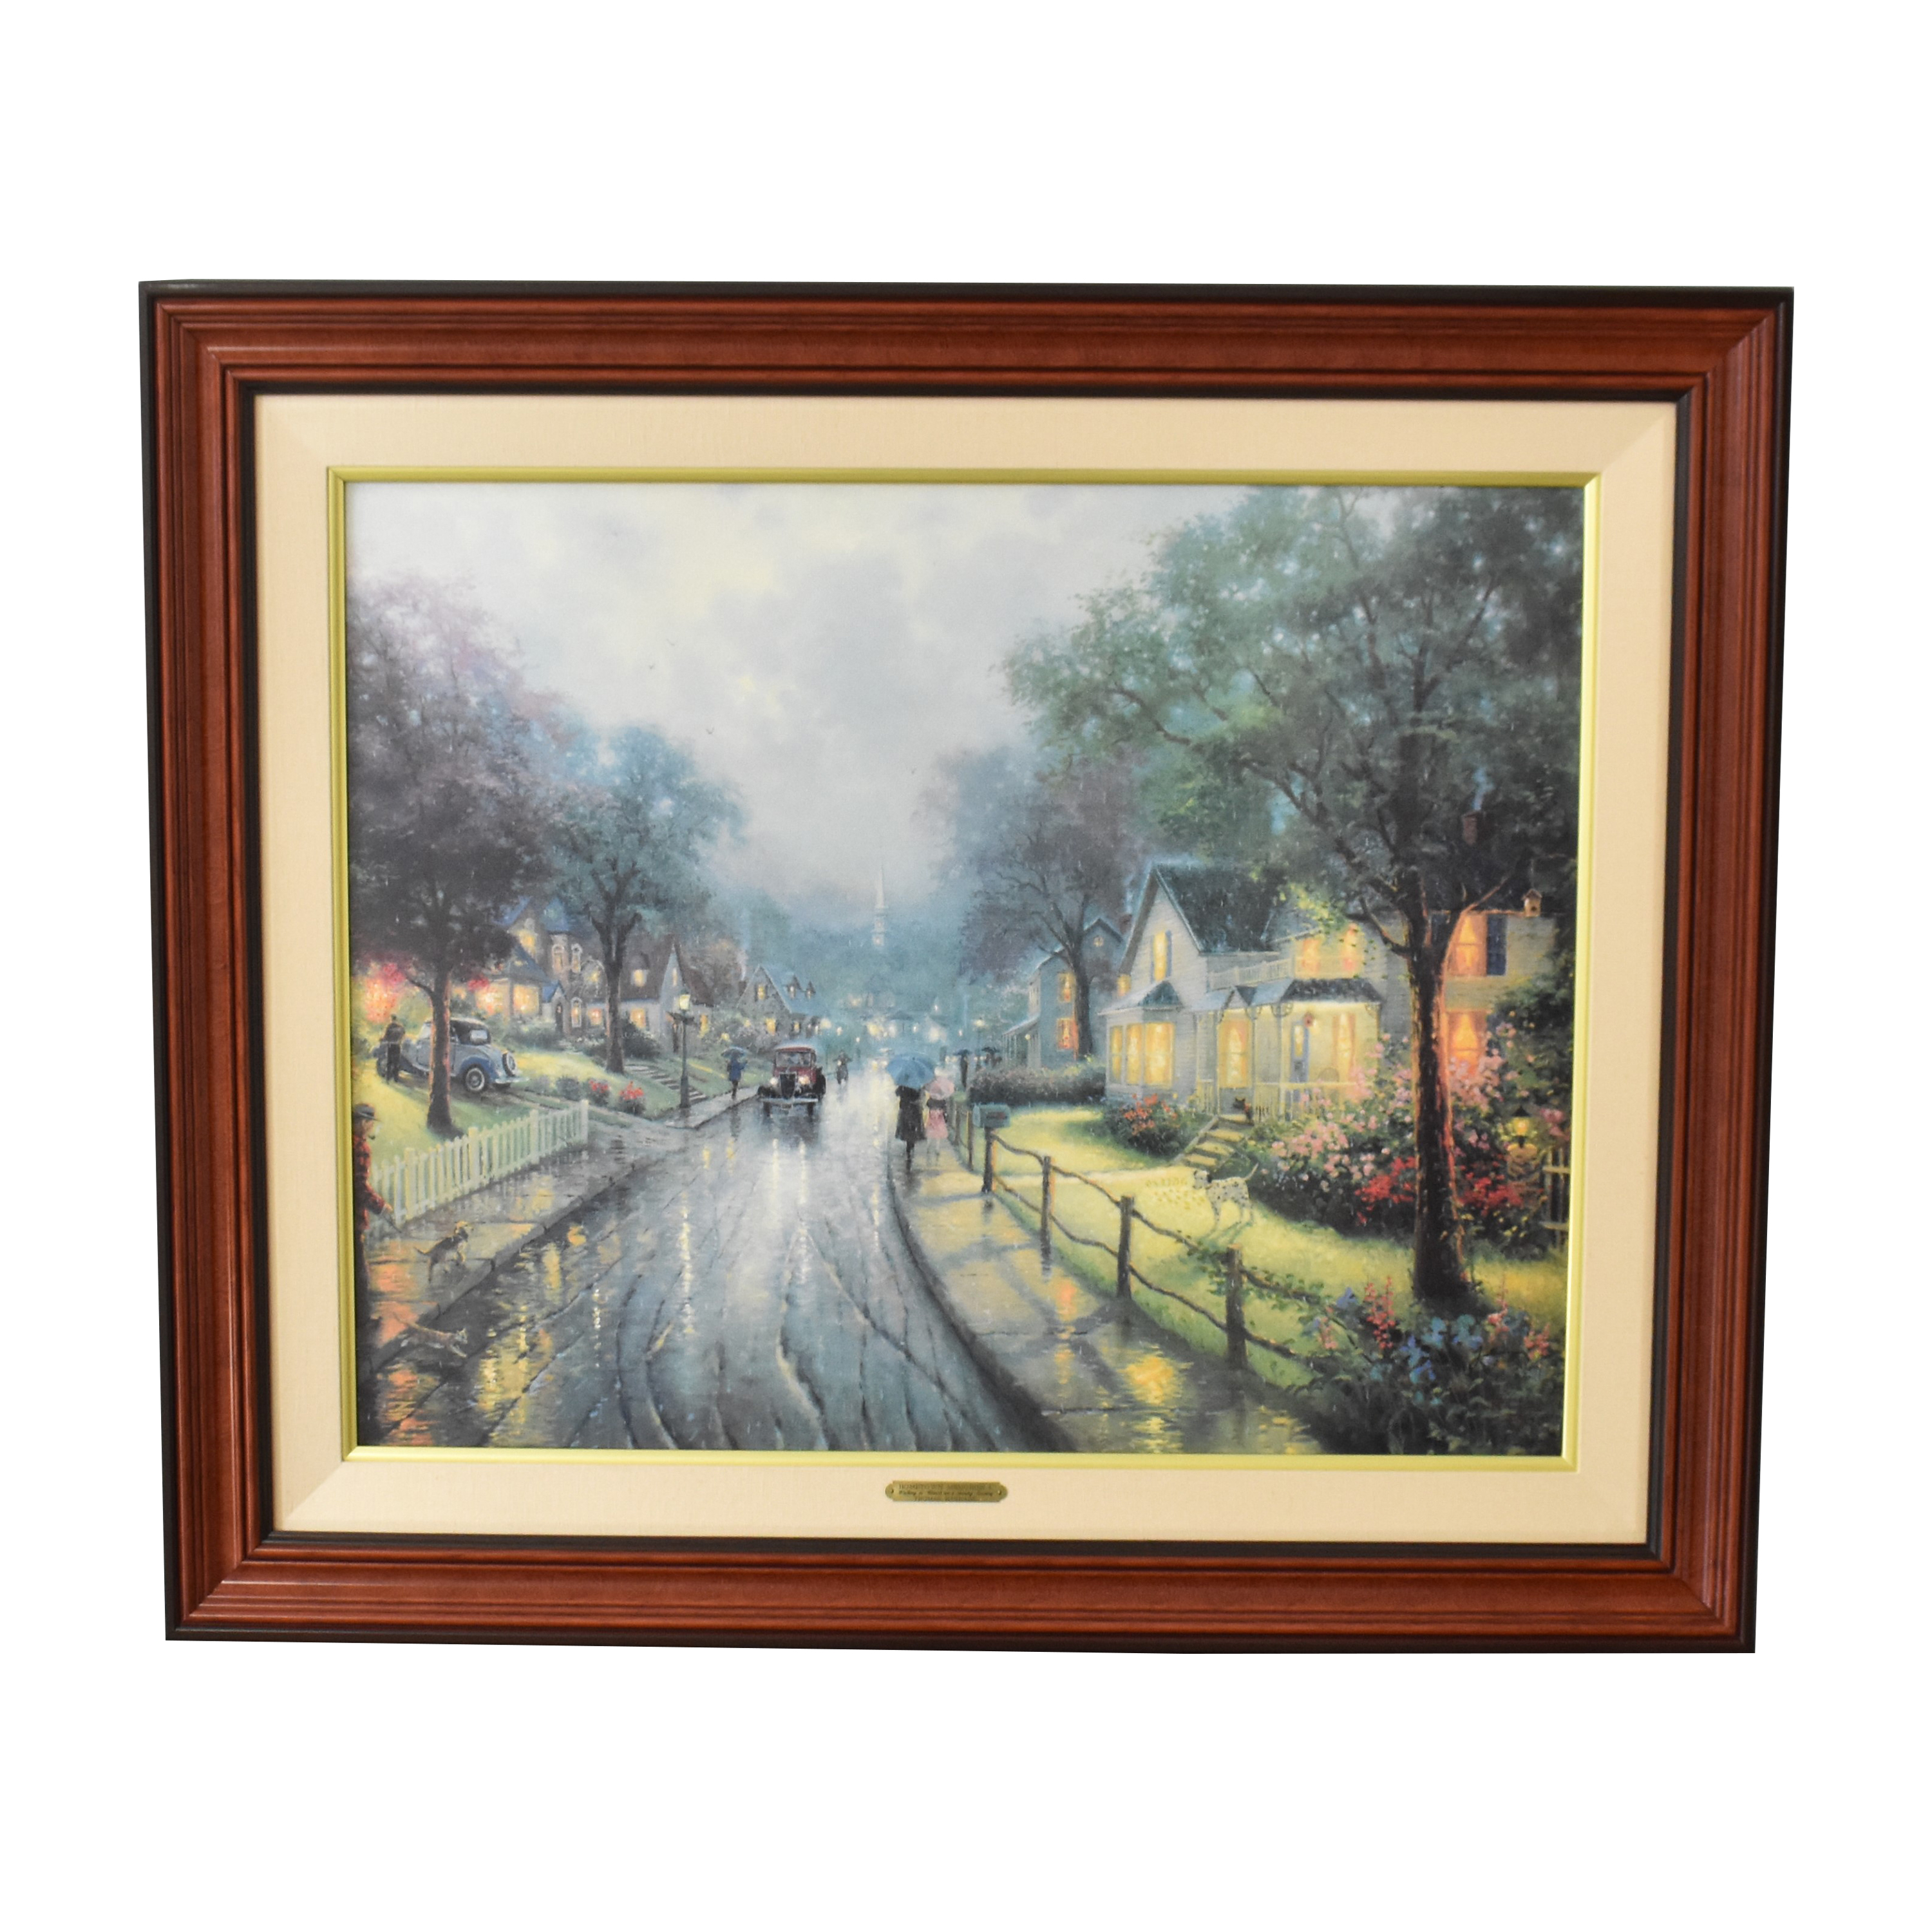 shop  Thomas Kinkade Walking To Church on a Sunday Evening Framed Print online